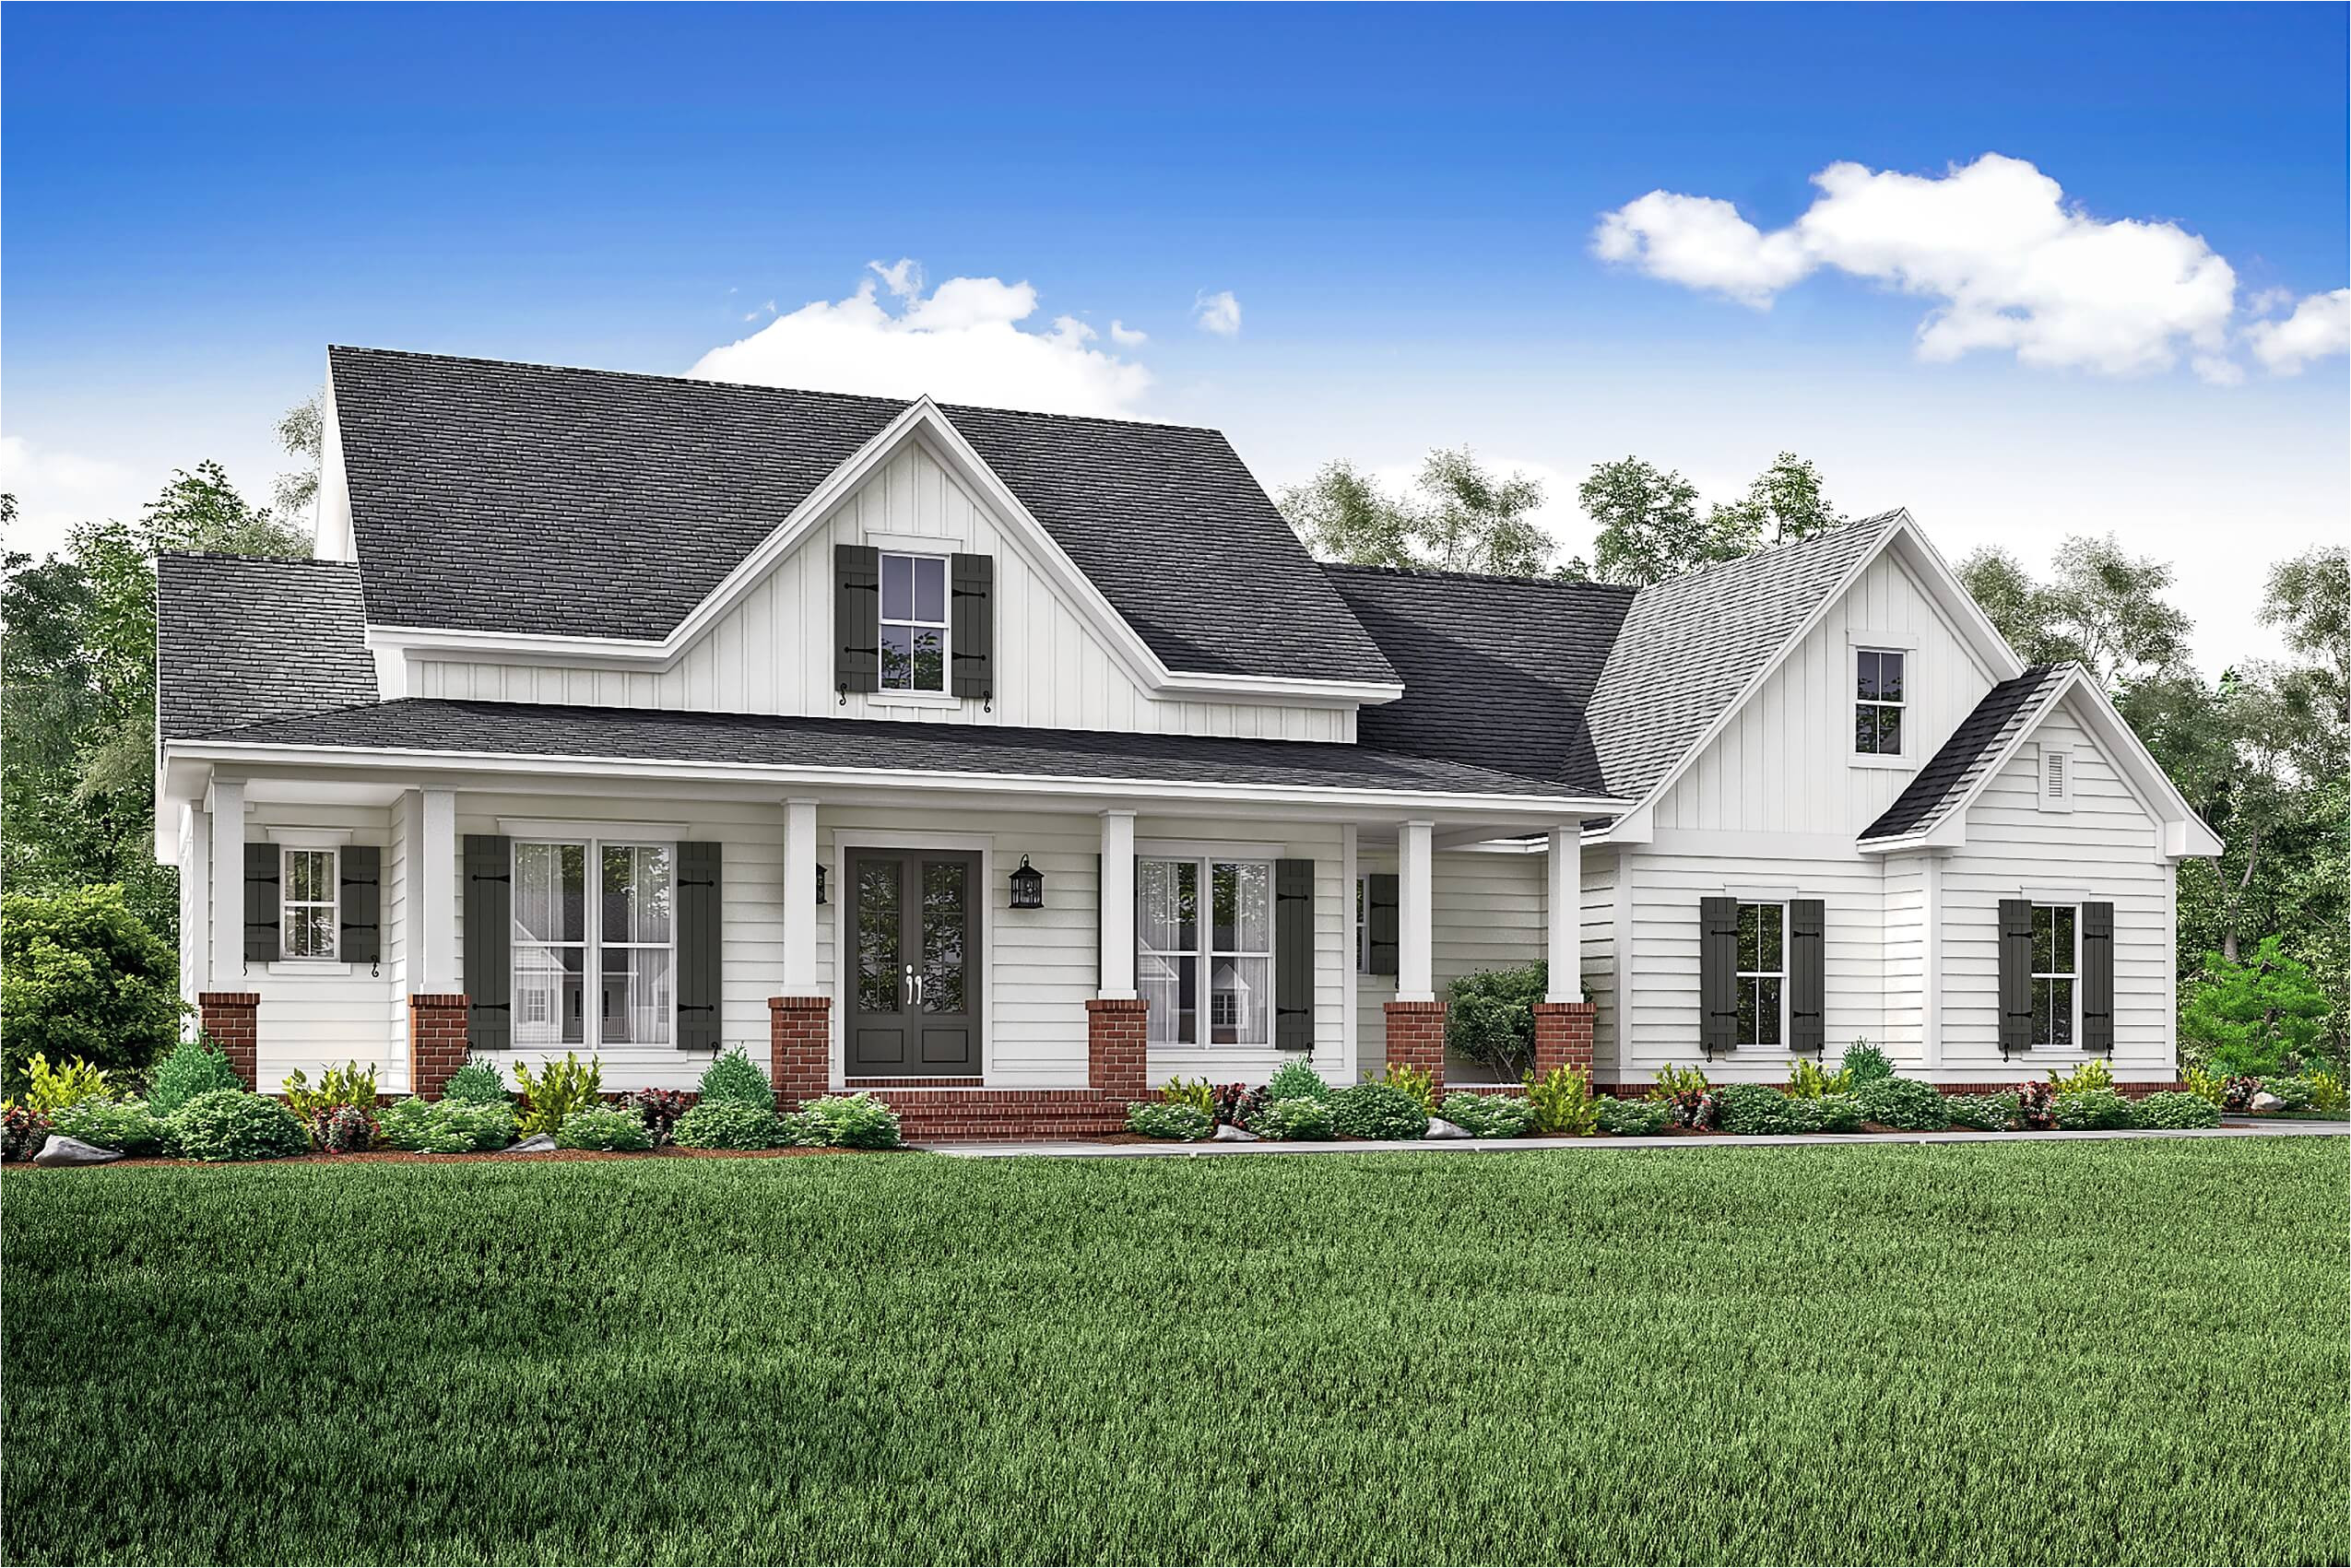 Country Homes House Plans 3 Bedrm 2466 Sq Ft Country House Plan 142 1166